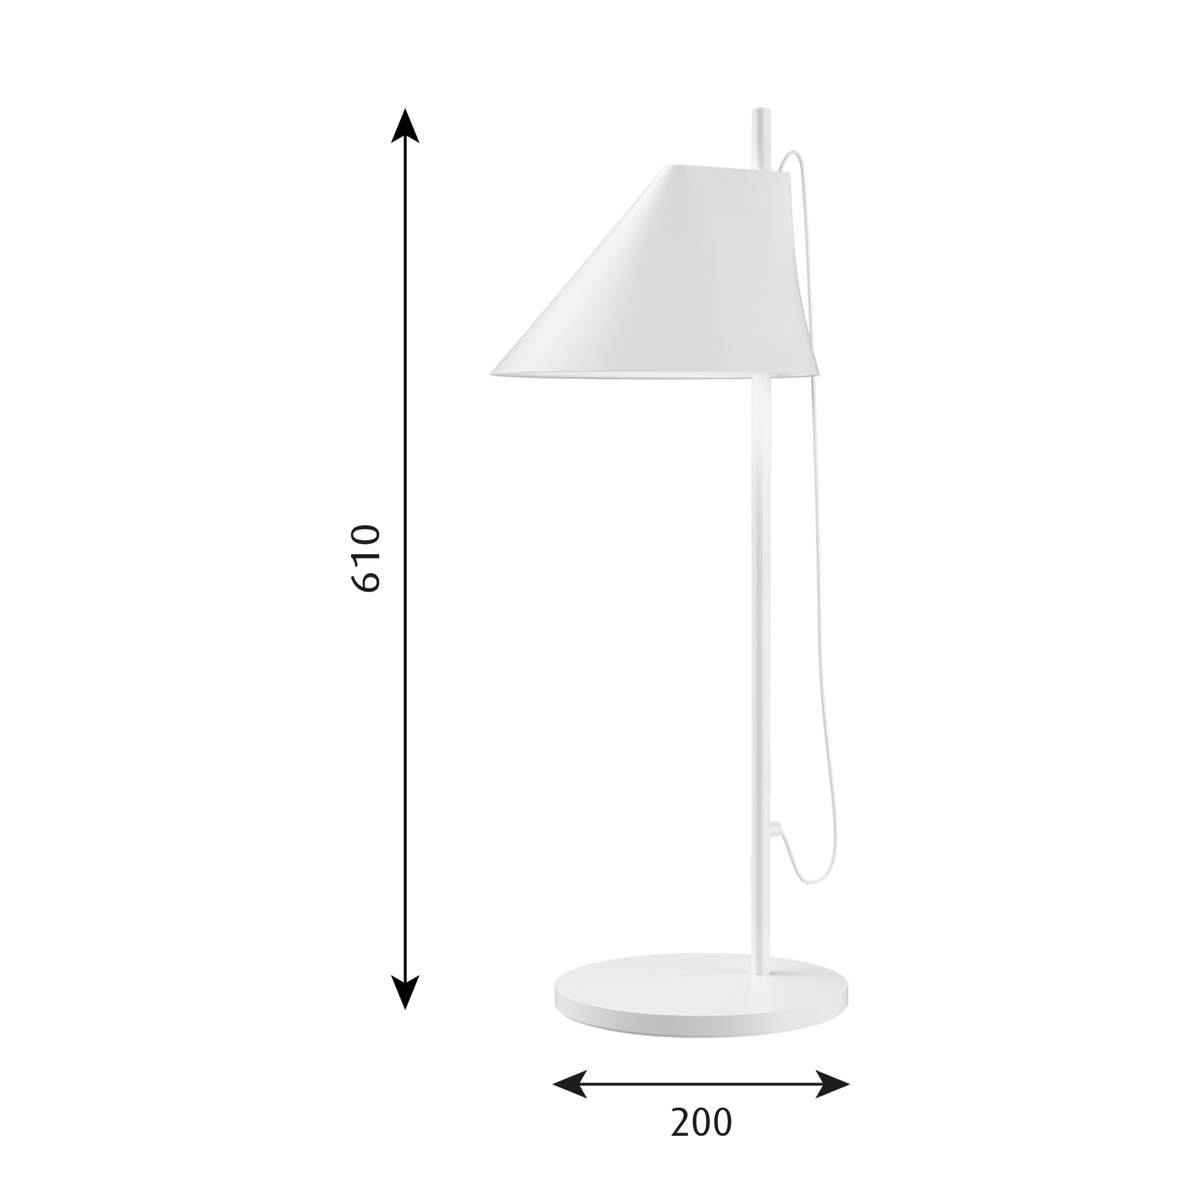 Dimensions for Louis Poulsen Office YUH Table Lamp by GamFratesi